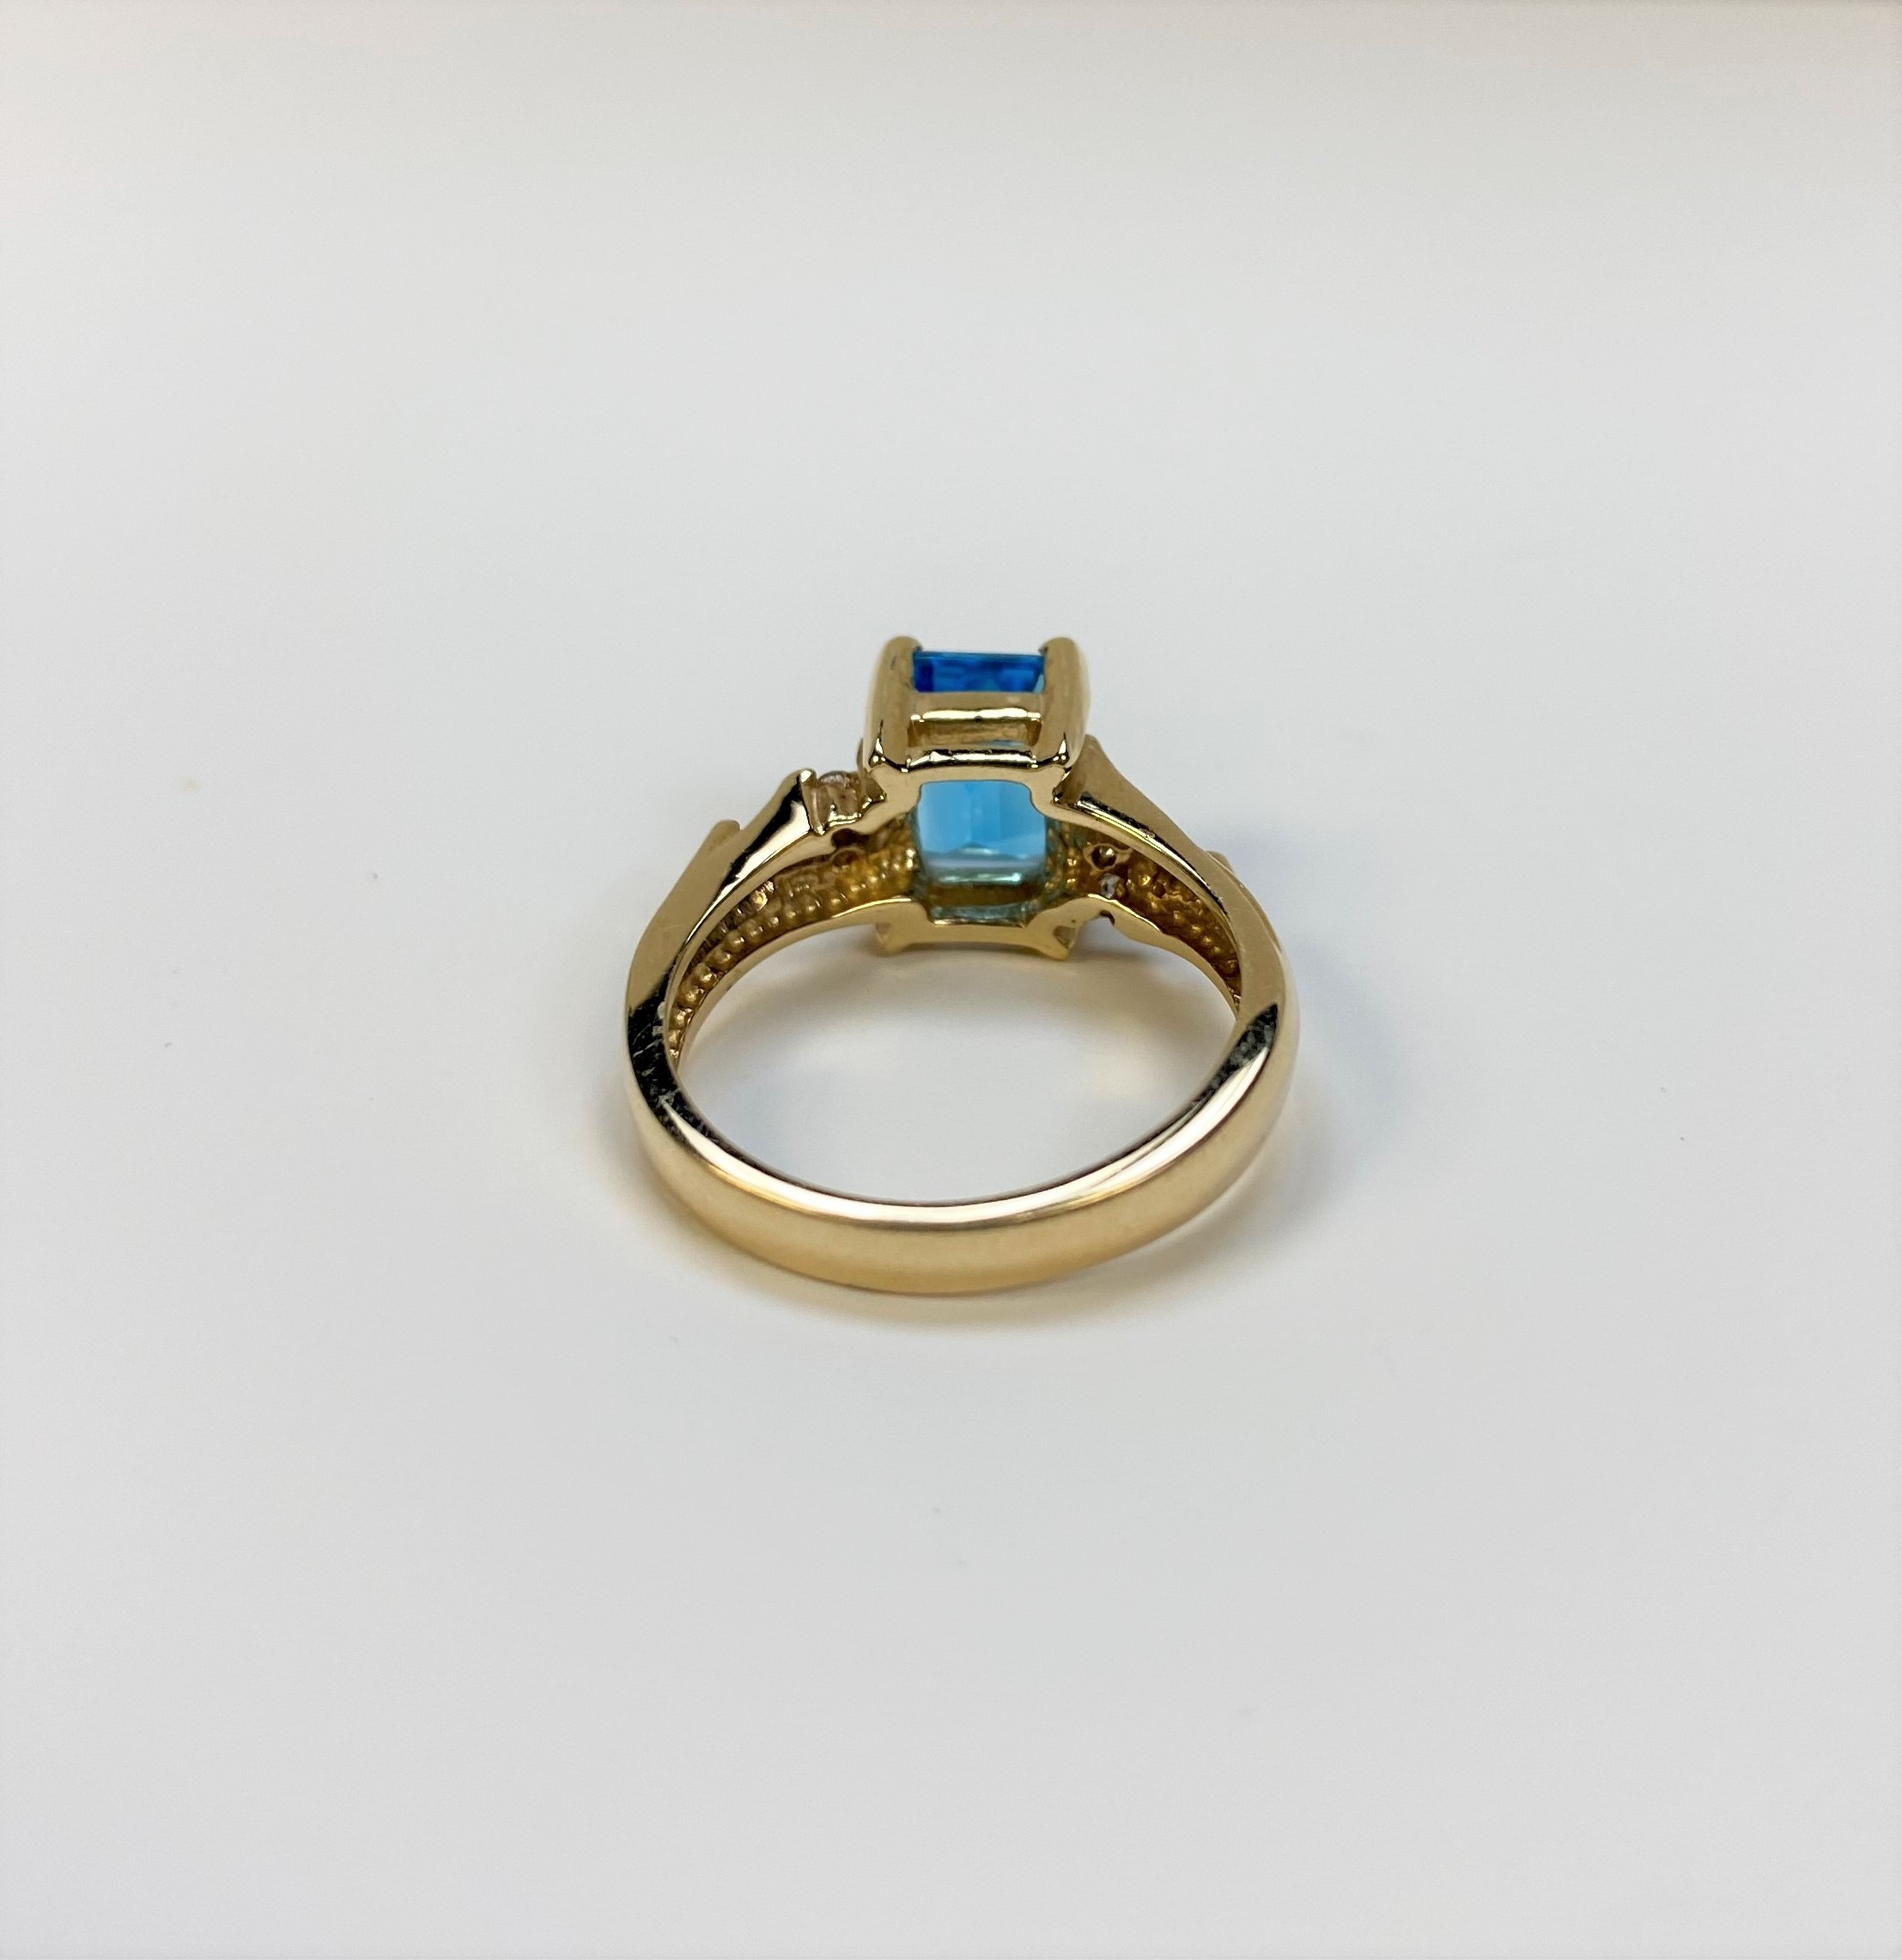 Over 1 Carat Blue Topaz Yellow Gold Ring